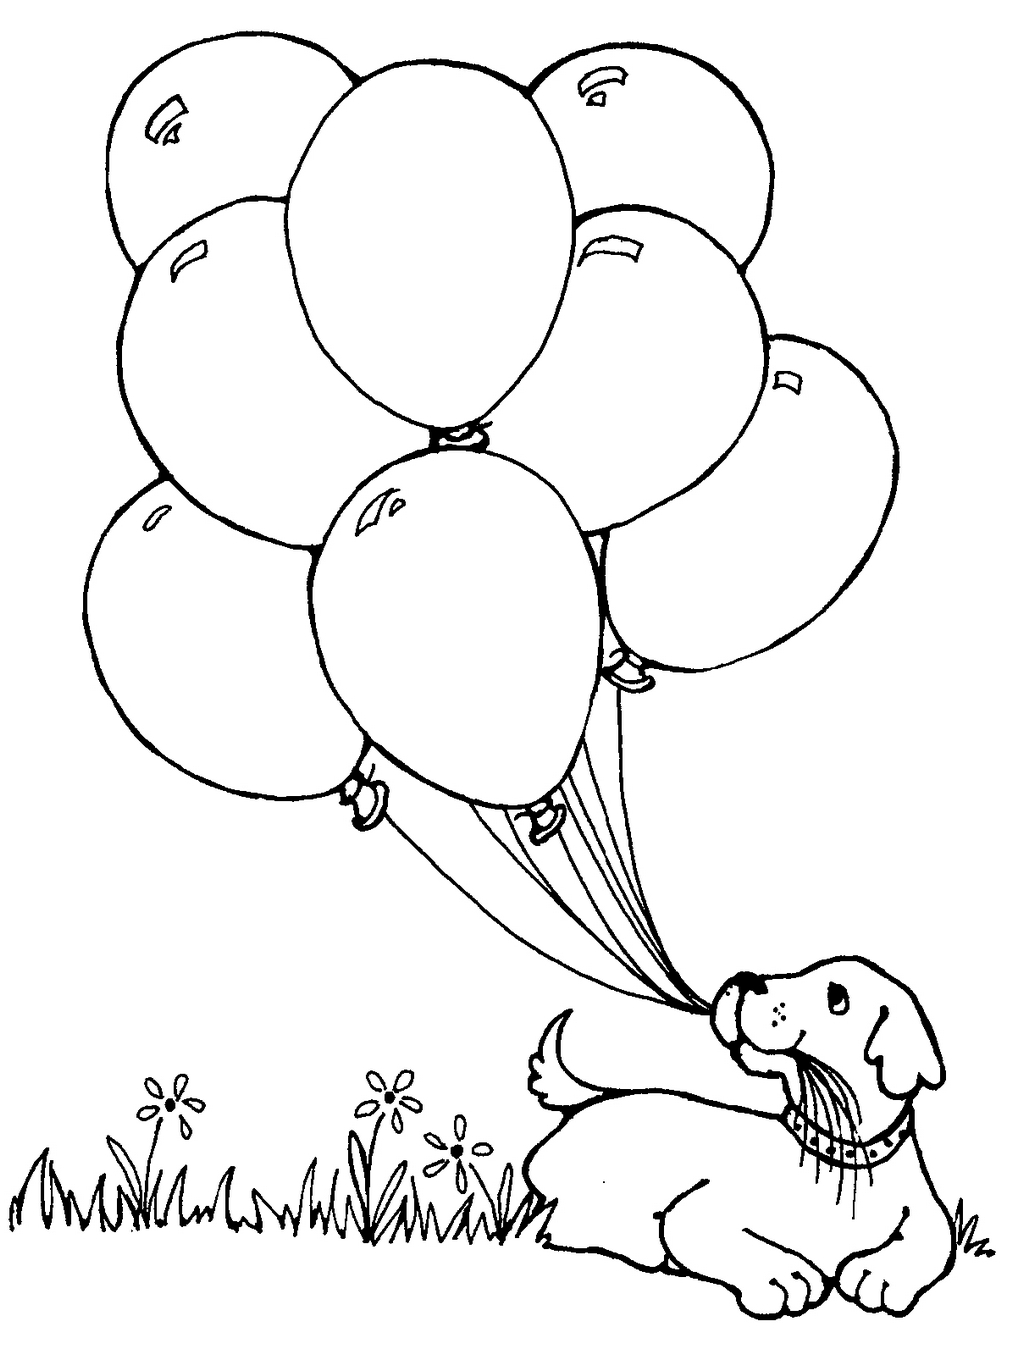 dog and balloons coloring picture